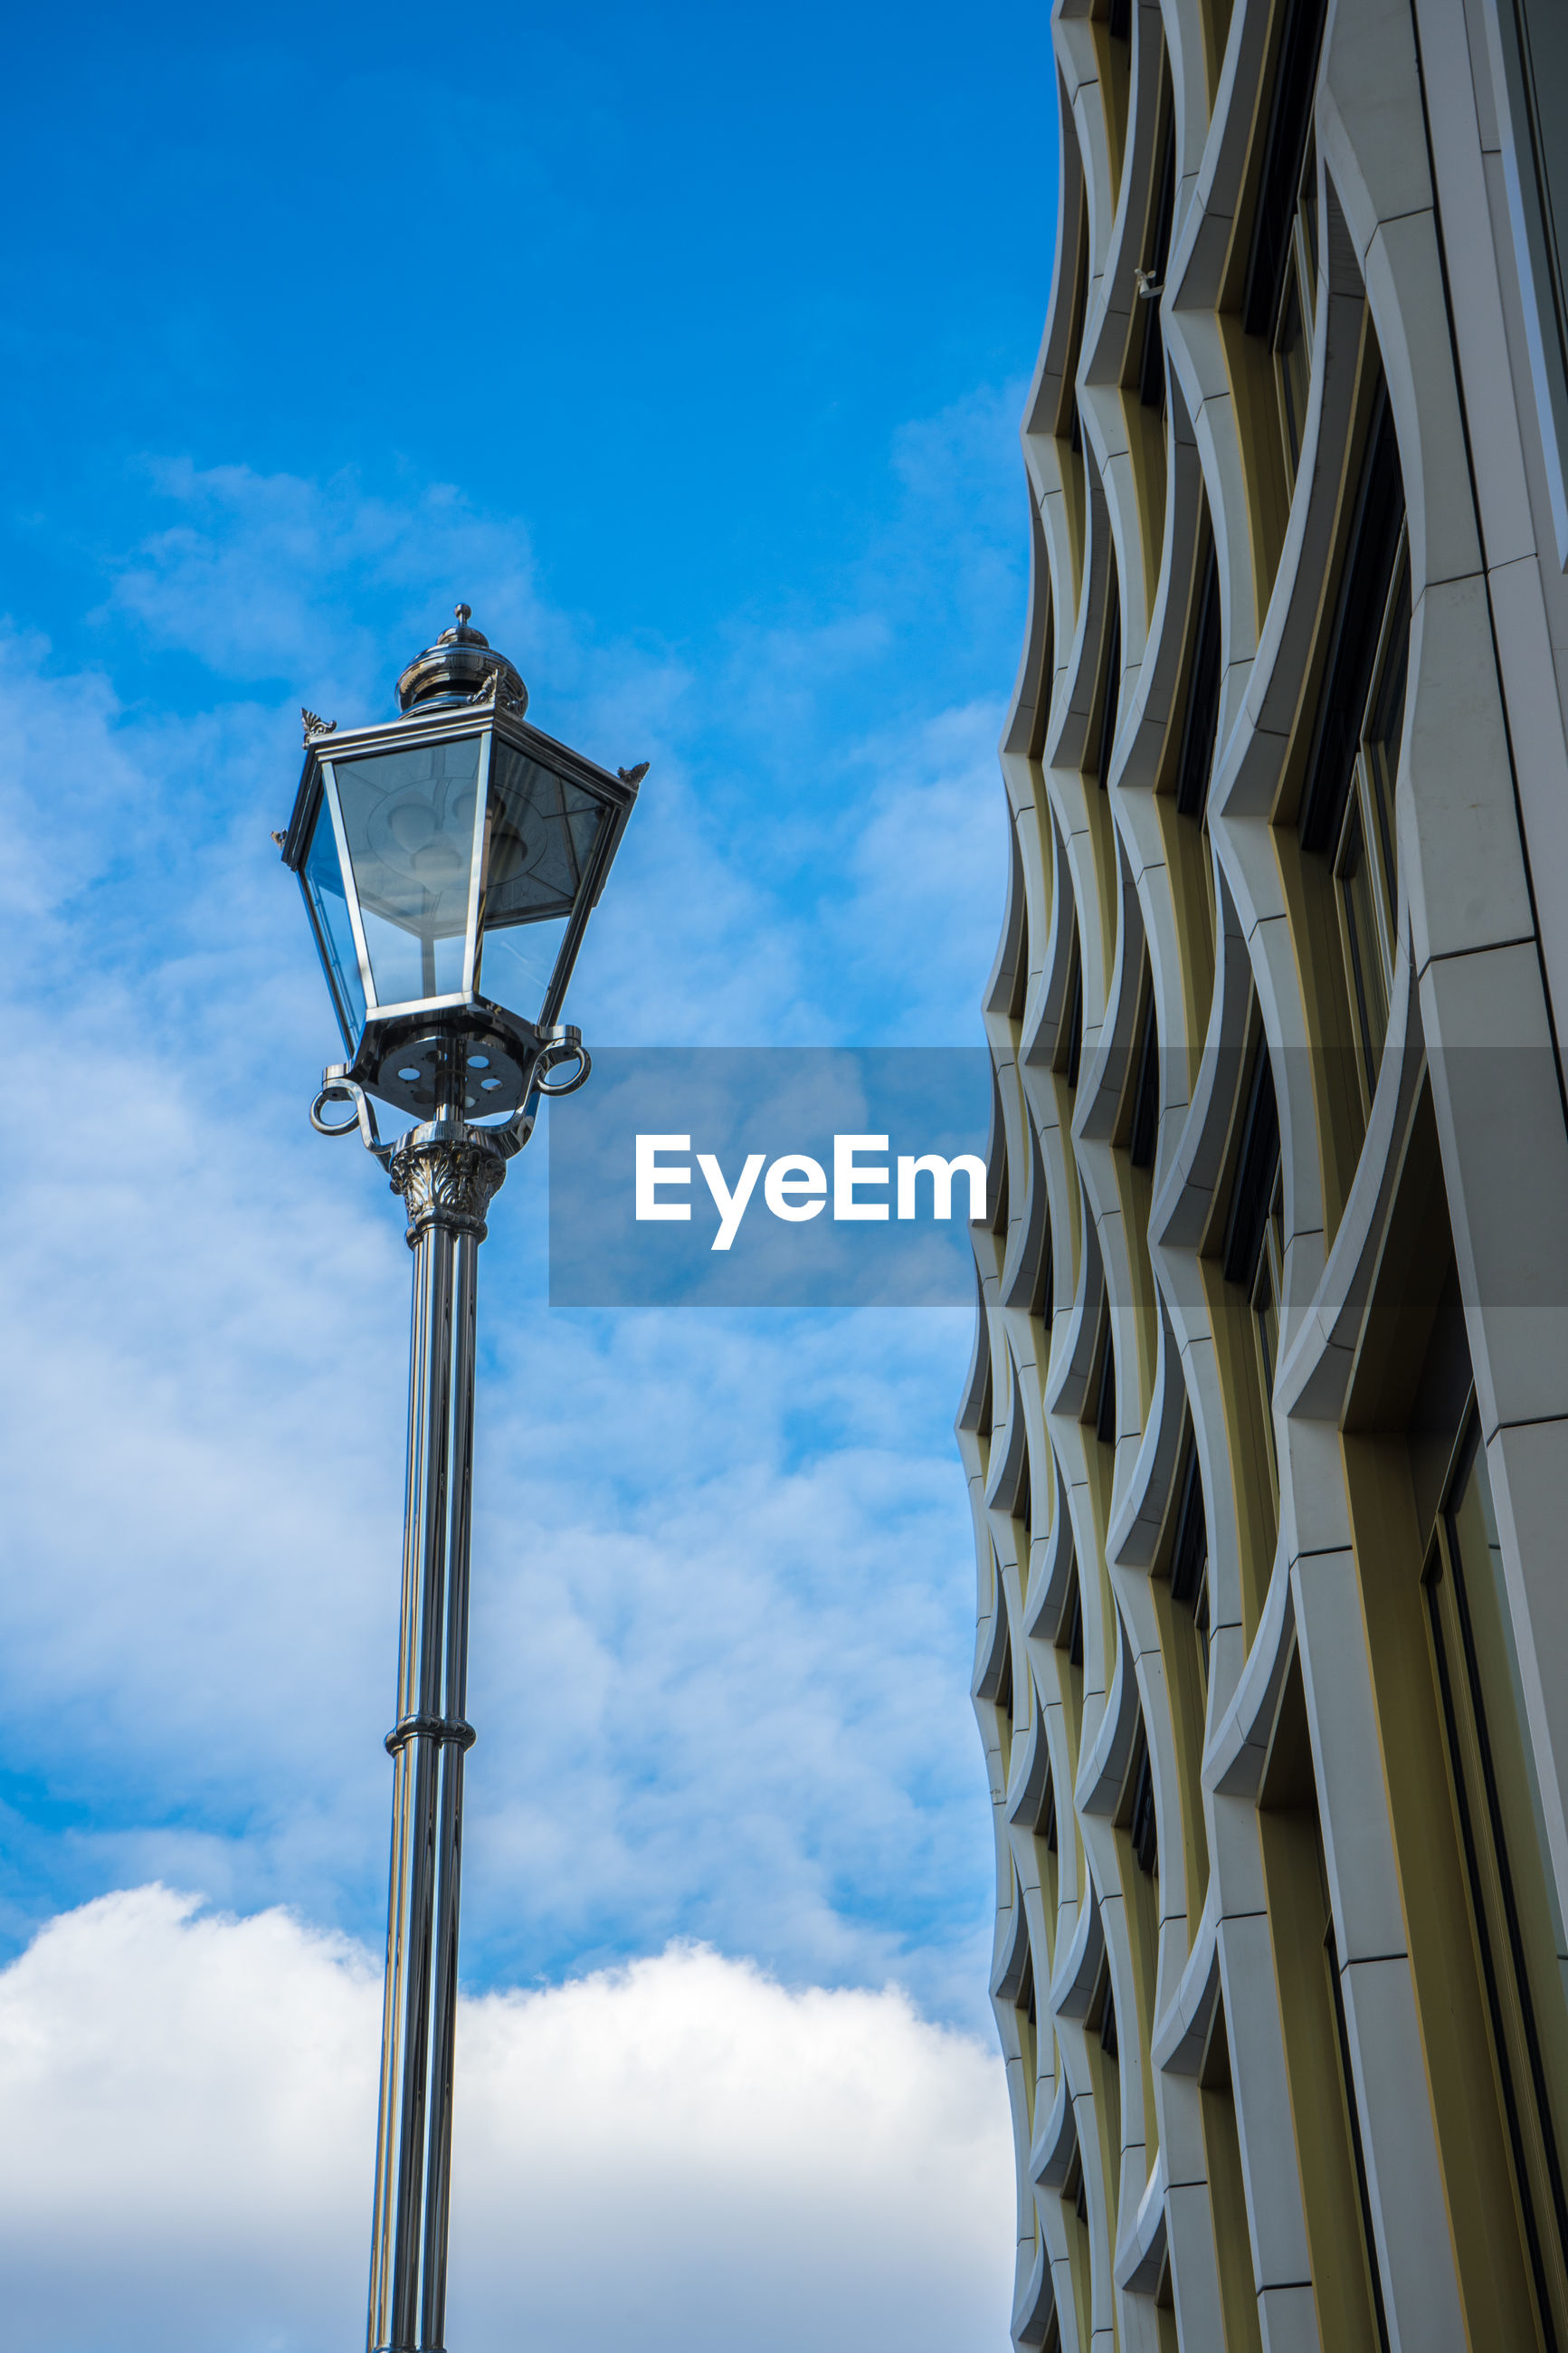 low angle view, sky, cloud - sky, architecture, street light, street, lighting equipment, built structure, building exterior, no people, nature, day, city, blue, building, outdoors, tall - high, office building exterior, metal, glass - material, light, skyscraper, apartment